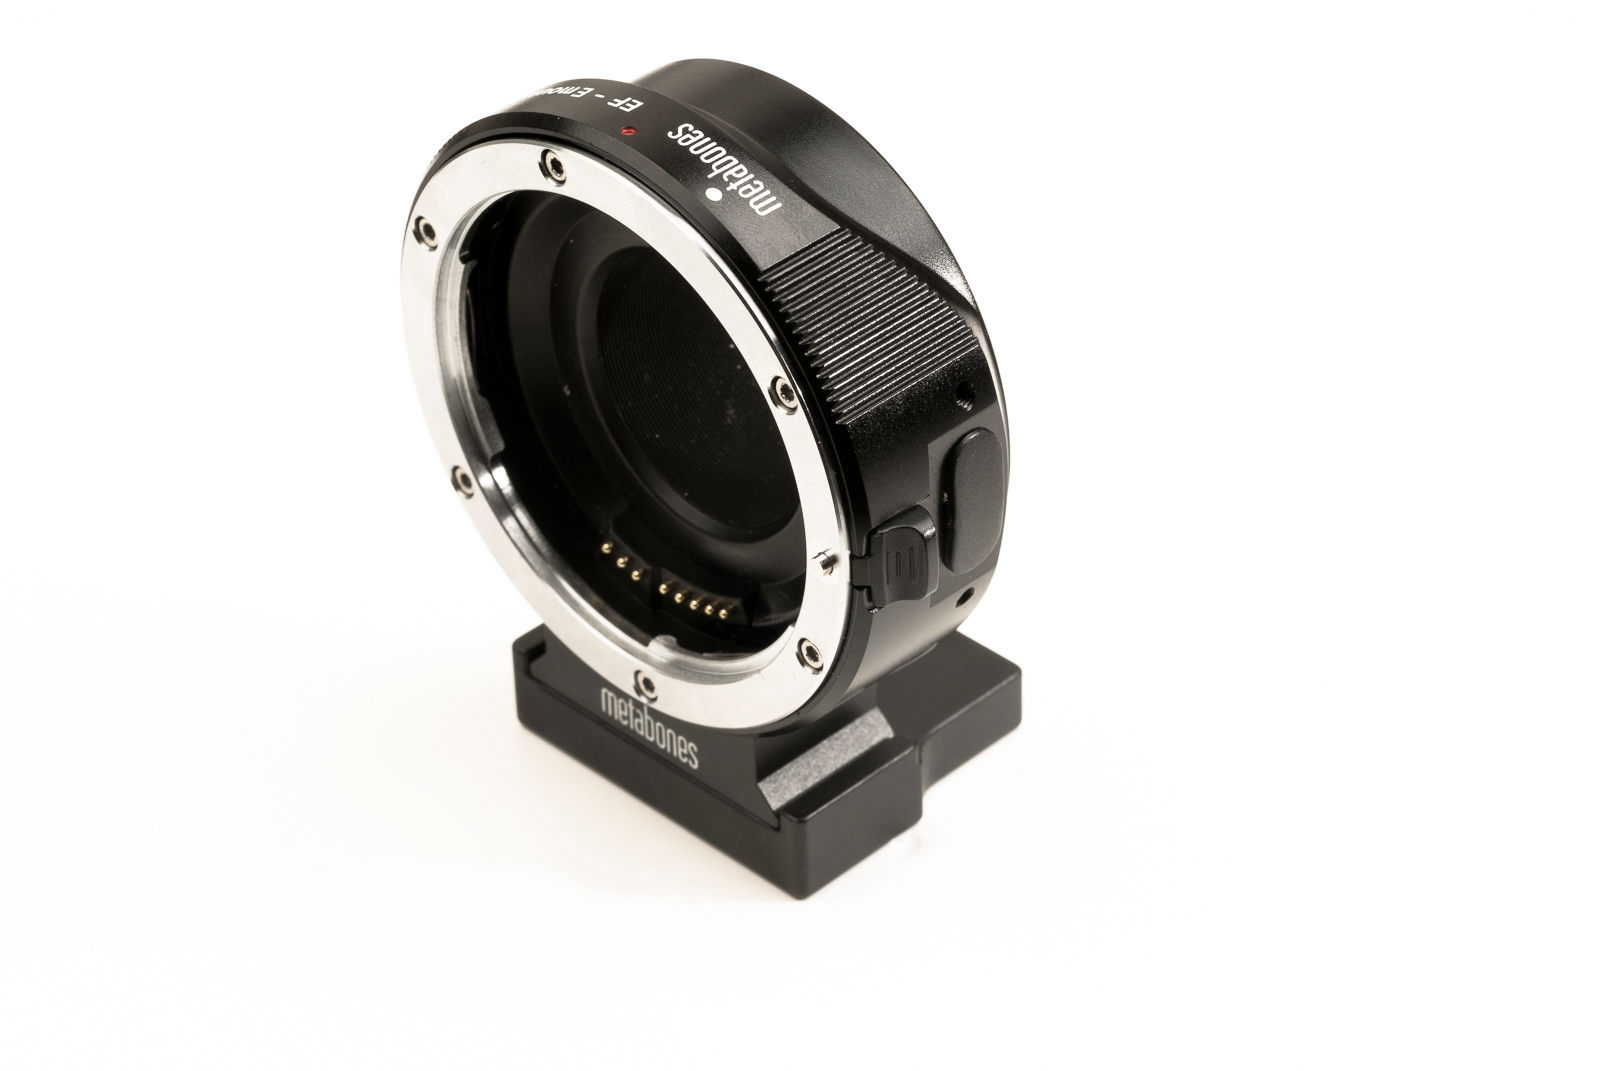 Hejnar Extender Spacer on Metabones Adapter overview